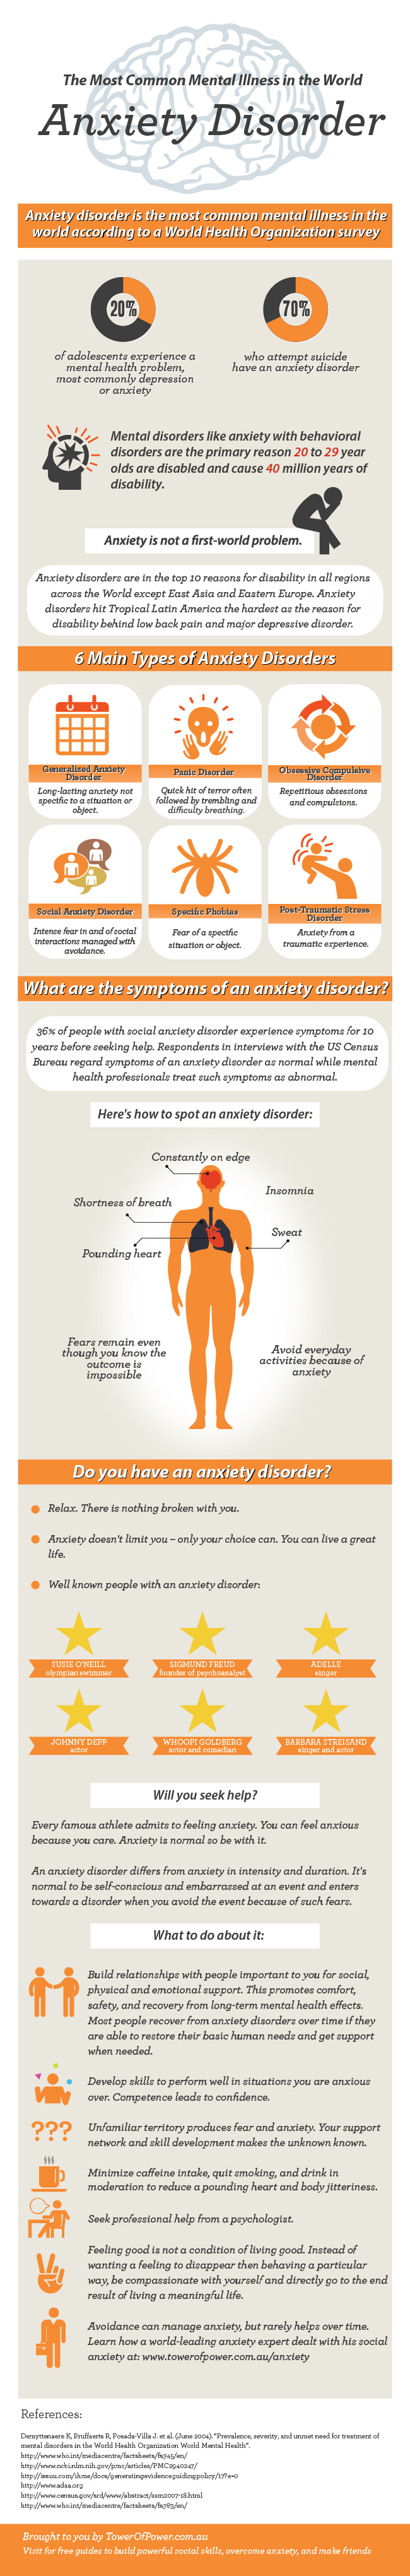 The Most Common Mental Illness in the World: Anxiety Disorder